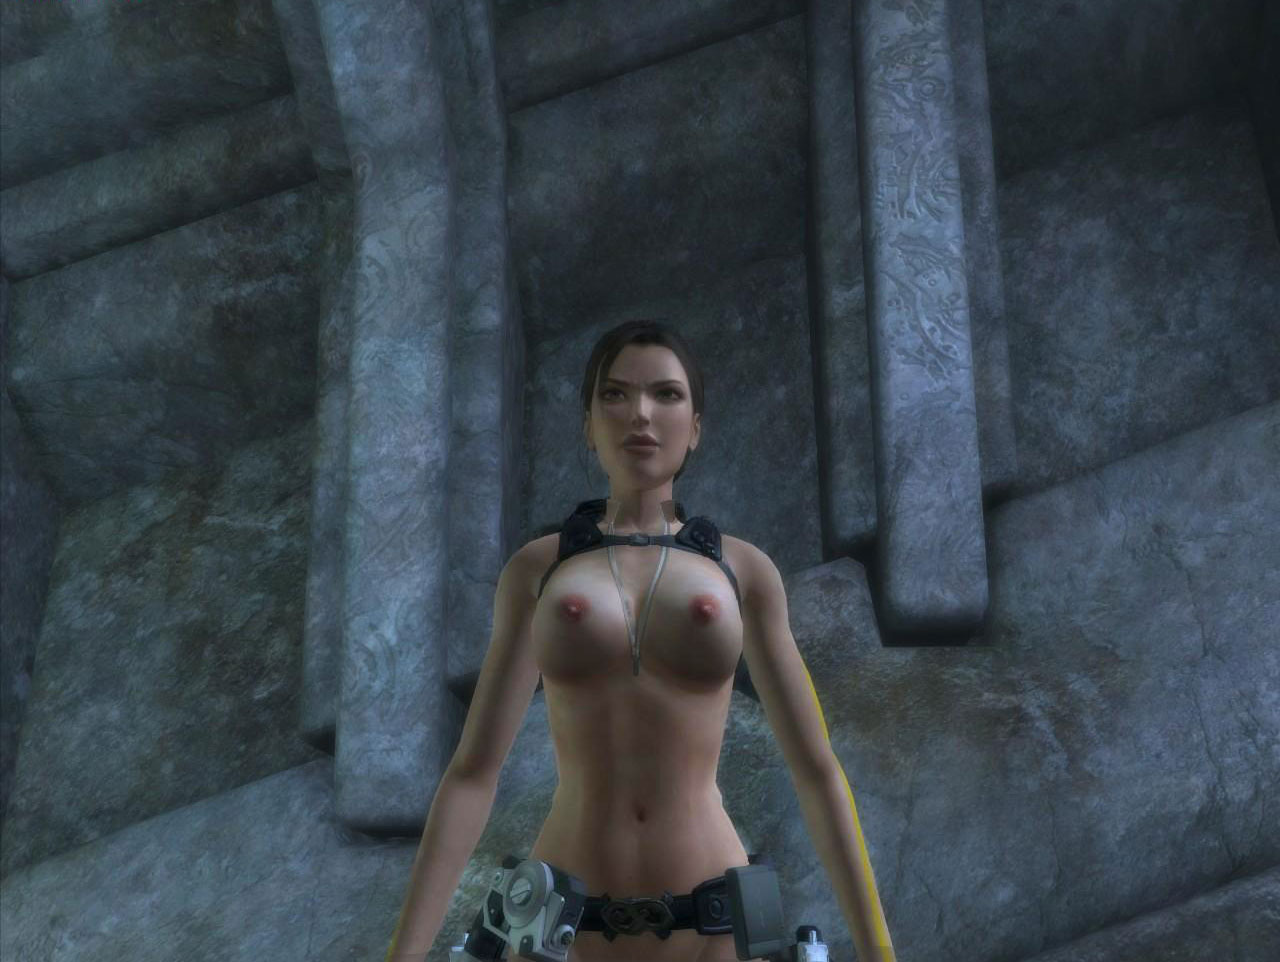 Tomb raider 5 nude patch sexual pics